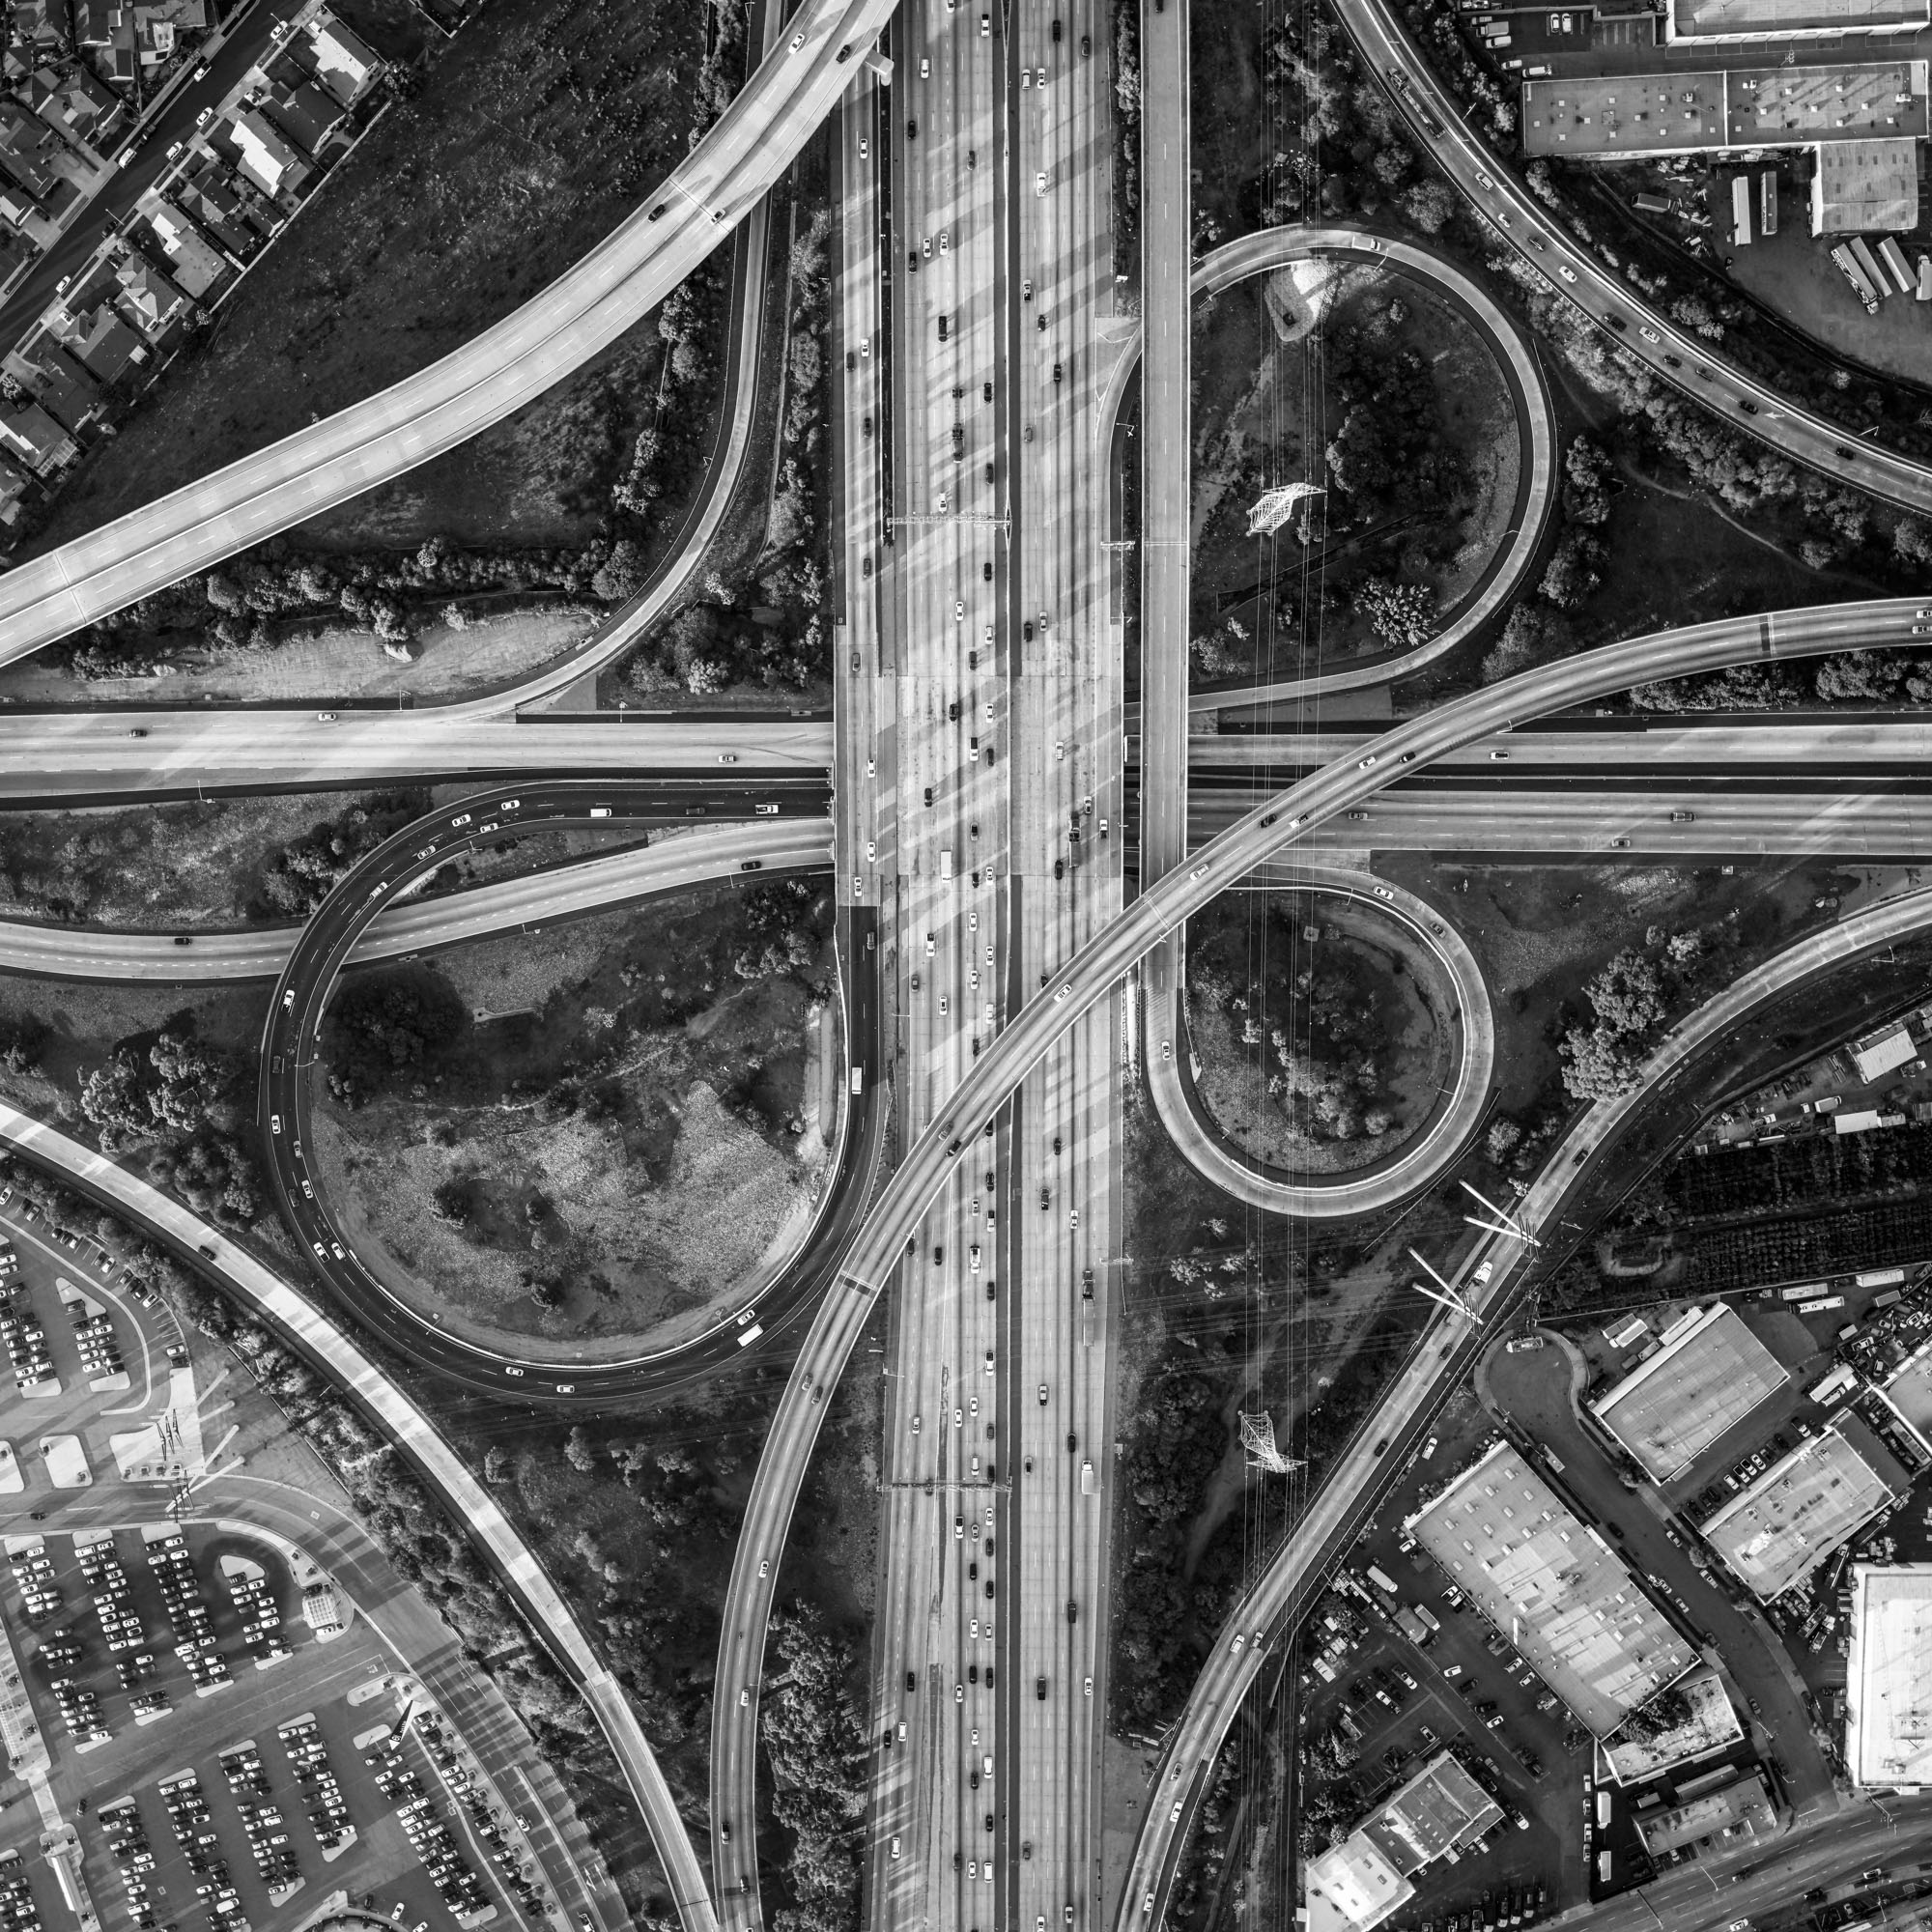 2018_12_21-Interchanges-0106-FINAL